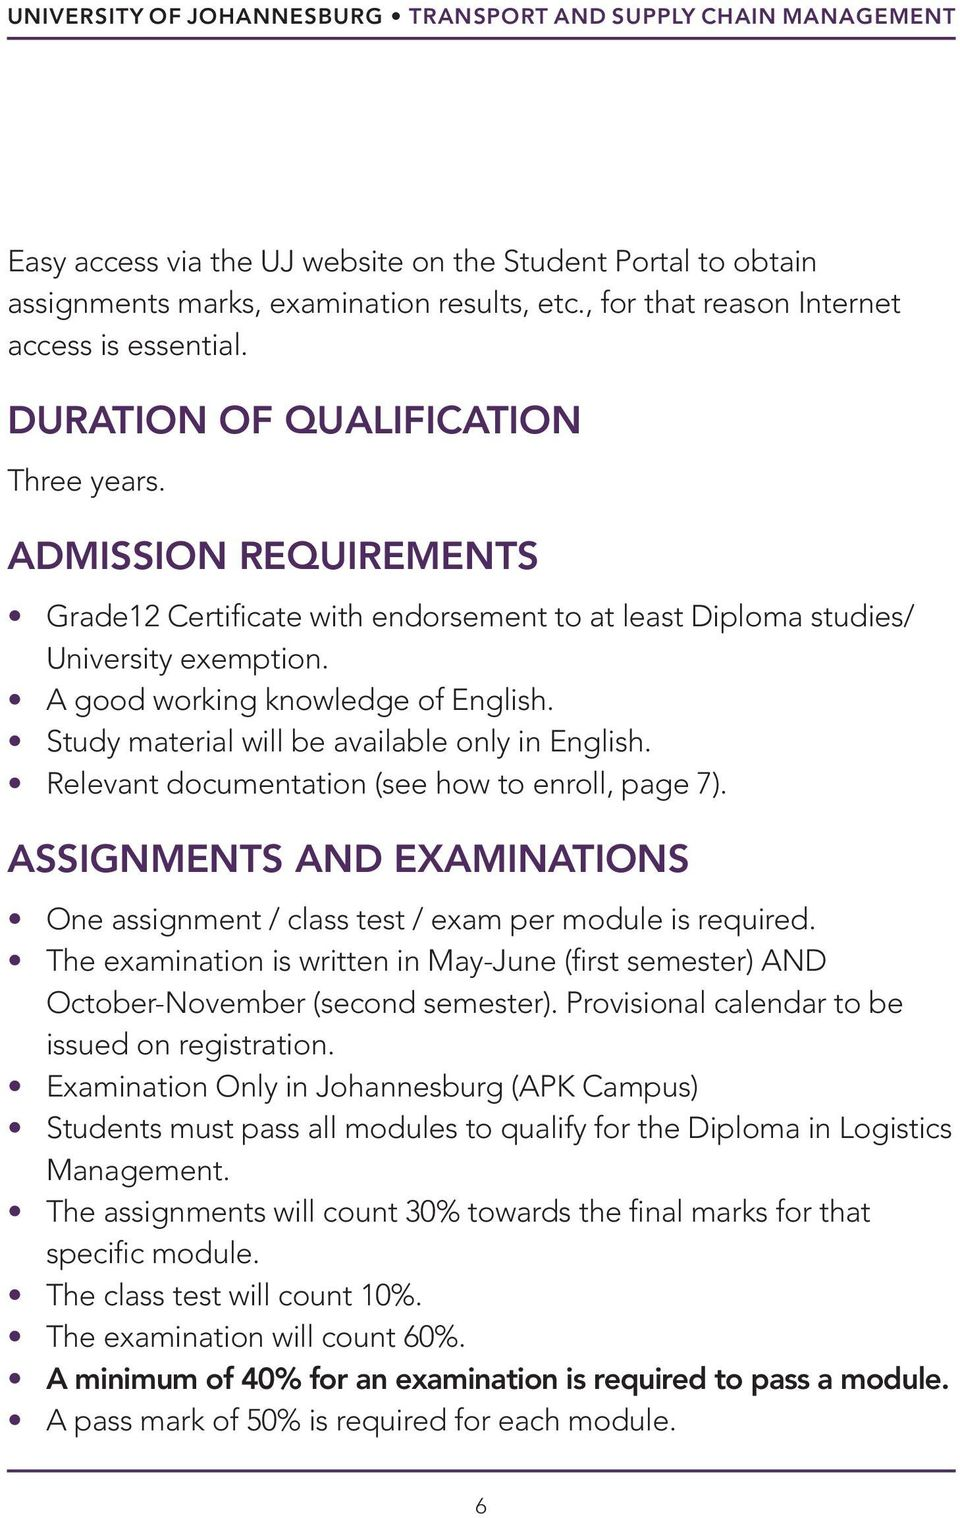 A good working knowledge of English. Study material will be available only in English. Relevant documentation (see how to enroll, page 7).